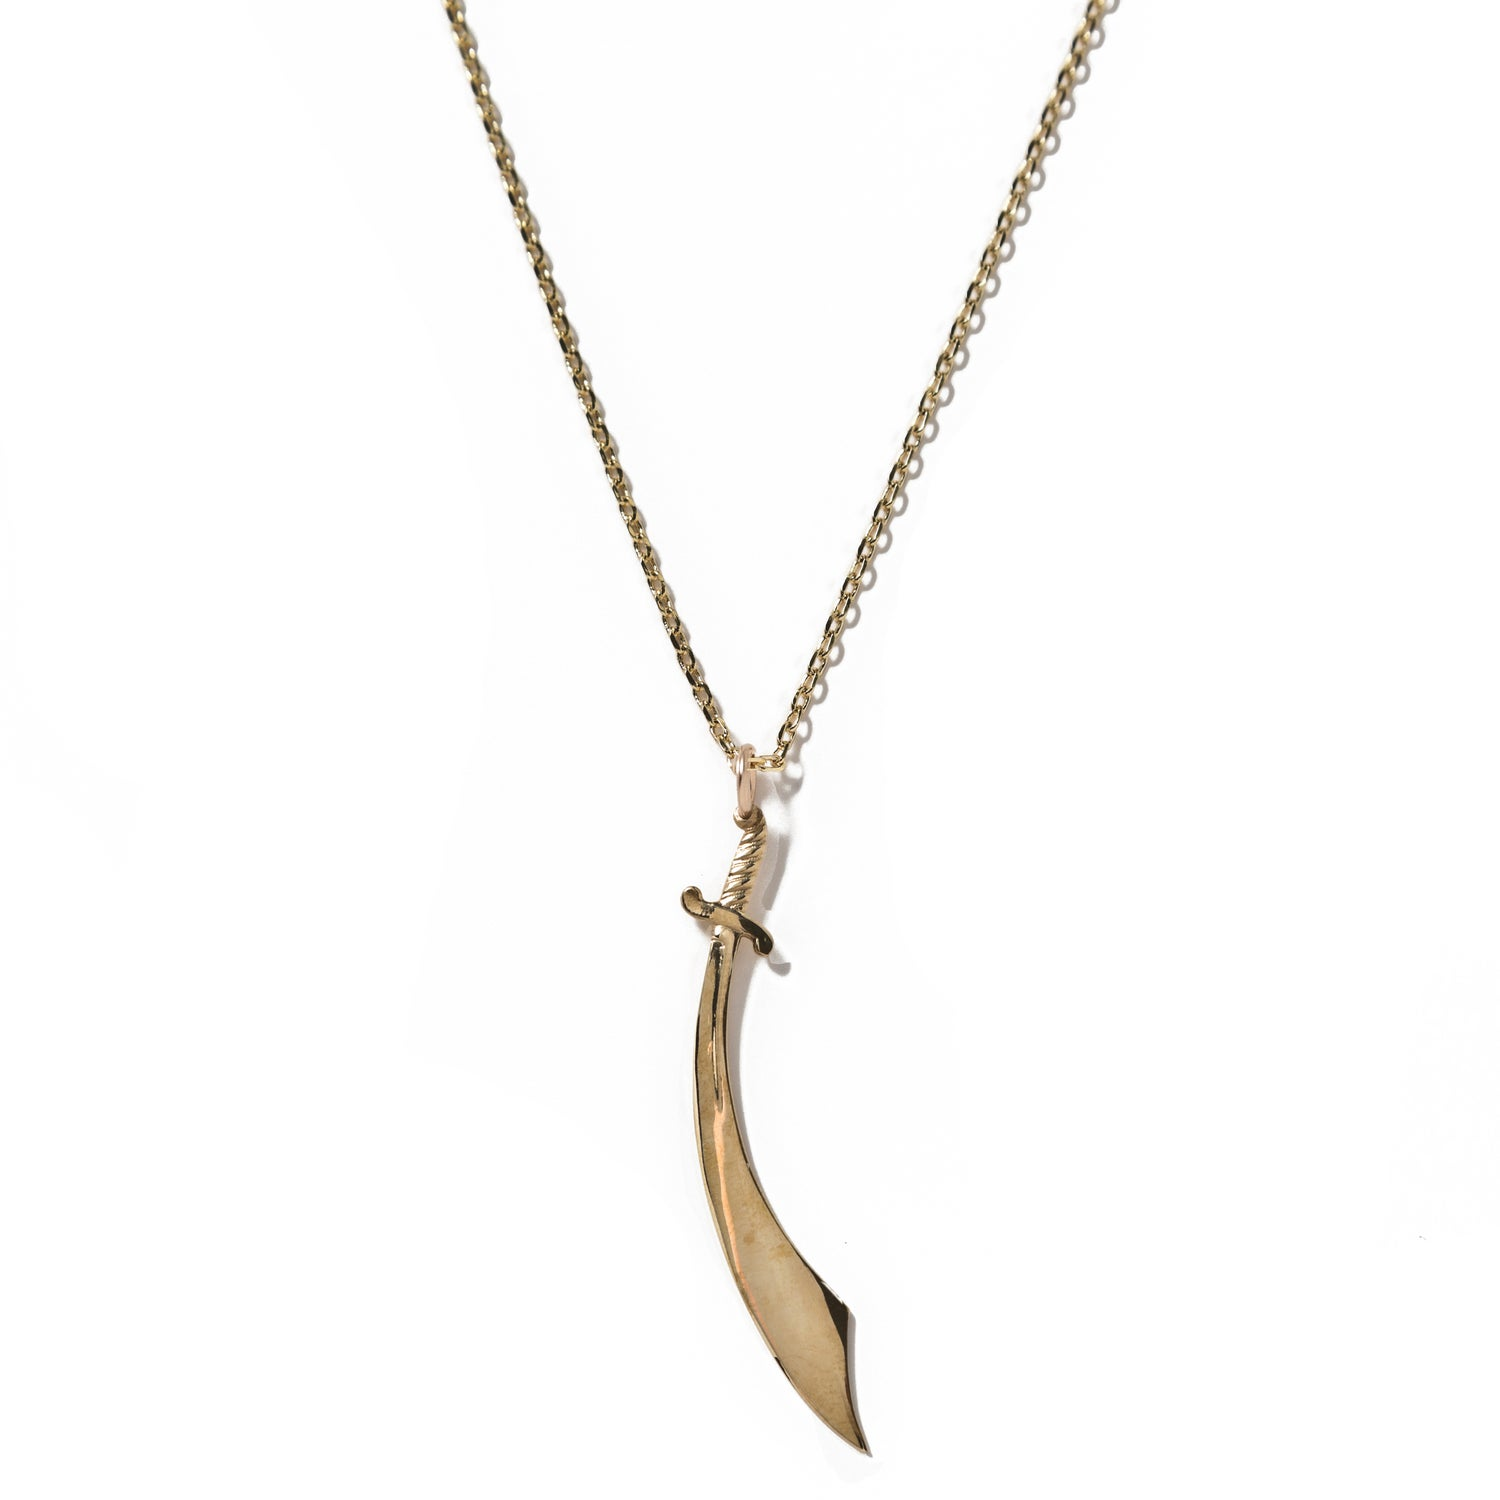 Image of Saif necklace